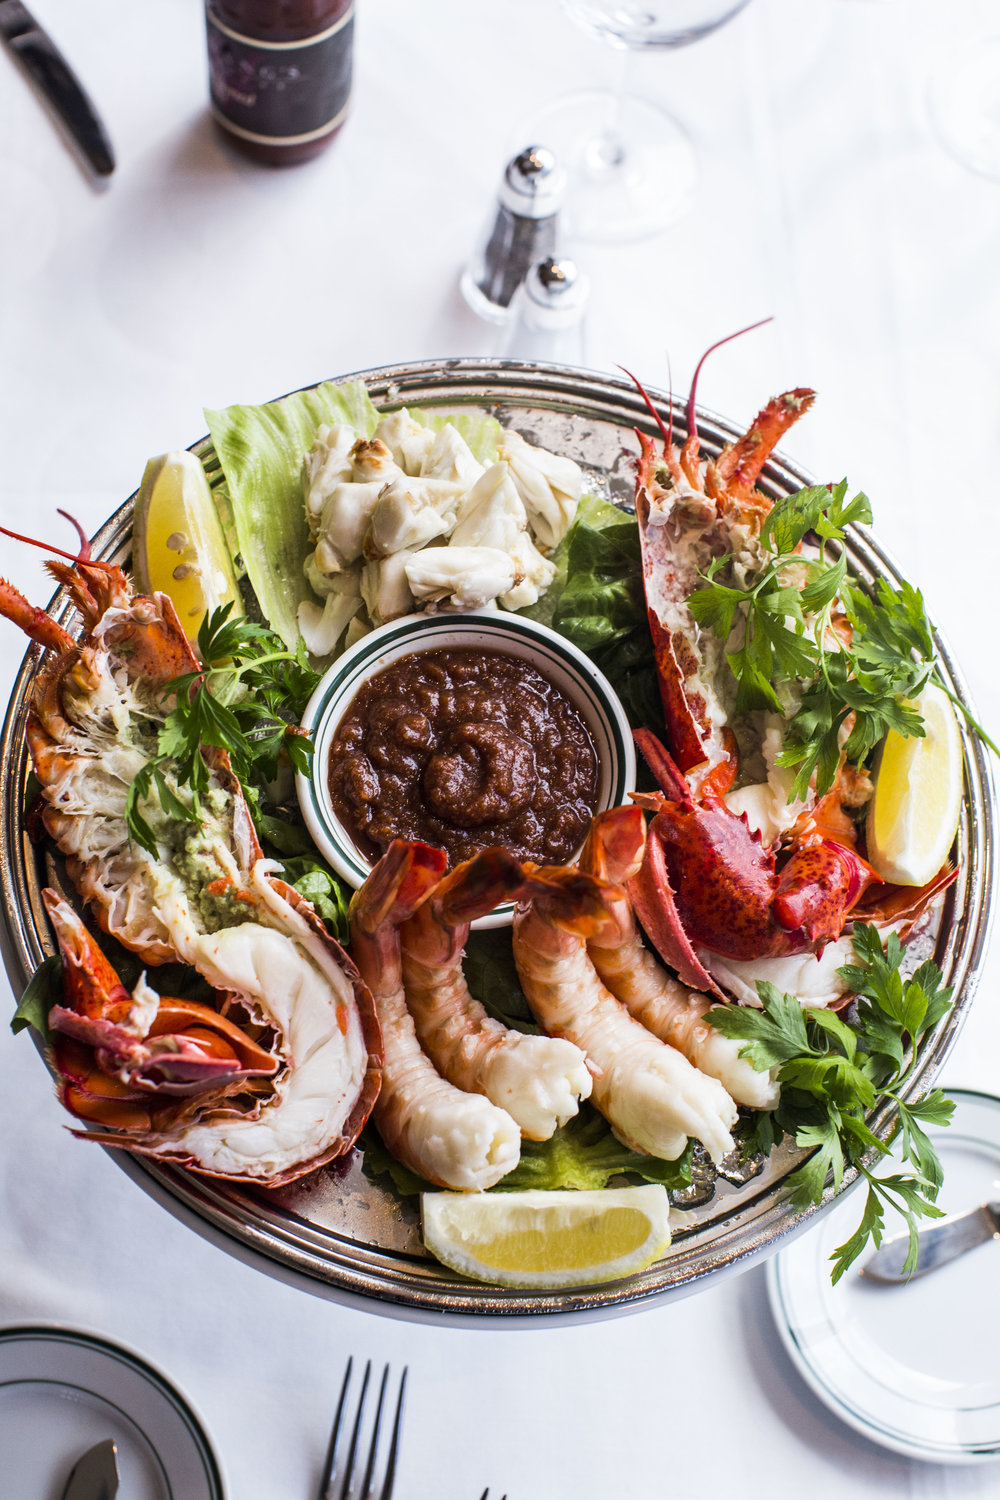 Wolfgang_s Steakhouse - seafood platter.jpg